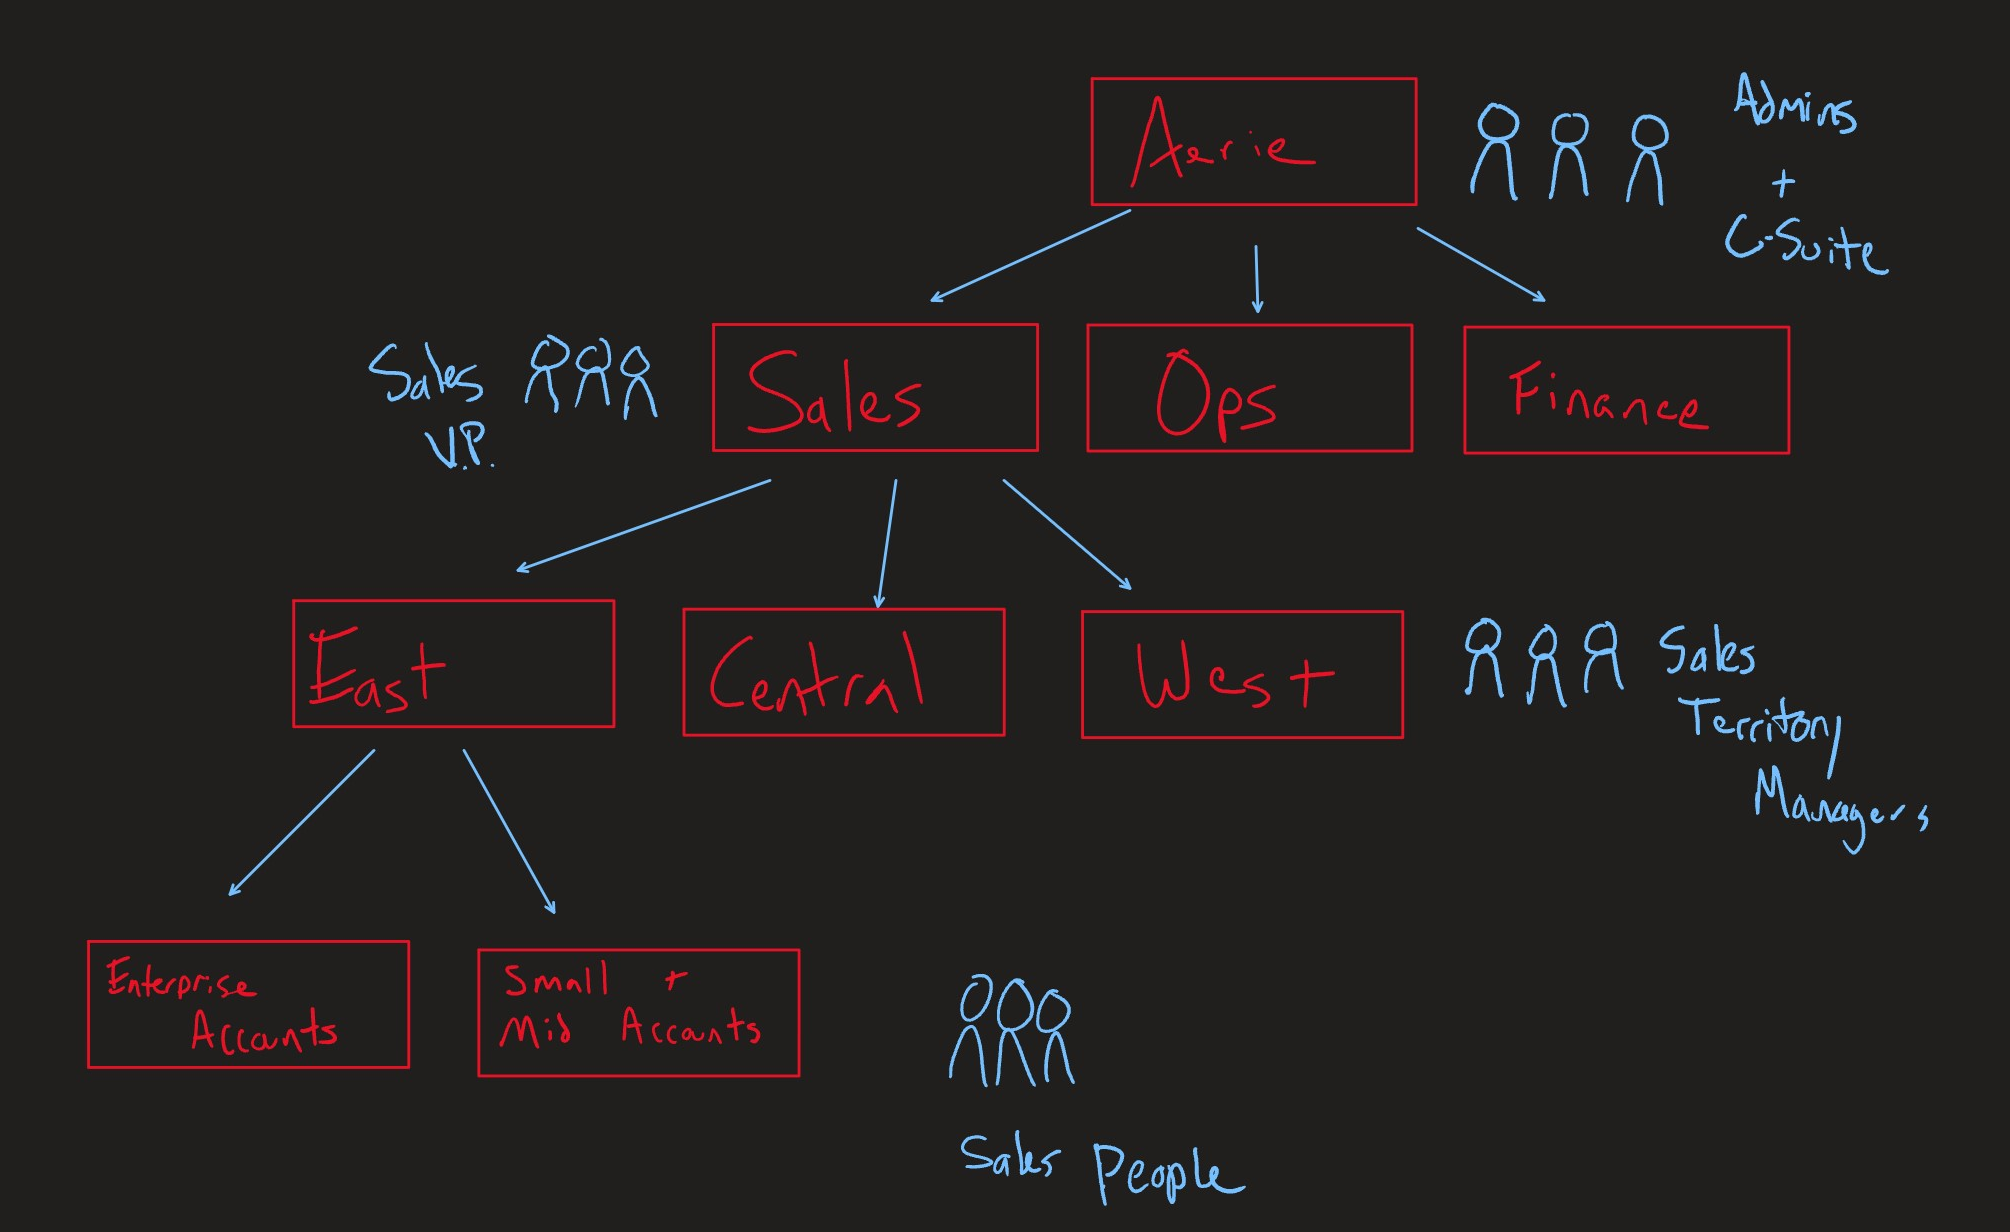 Business organization hierarchy sample